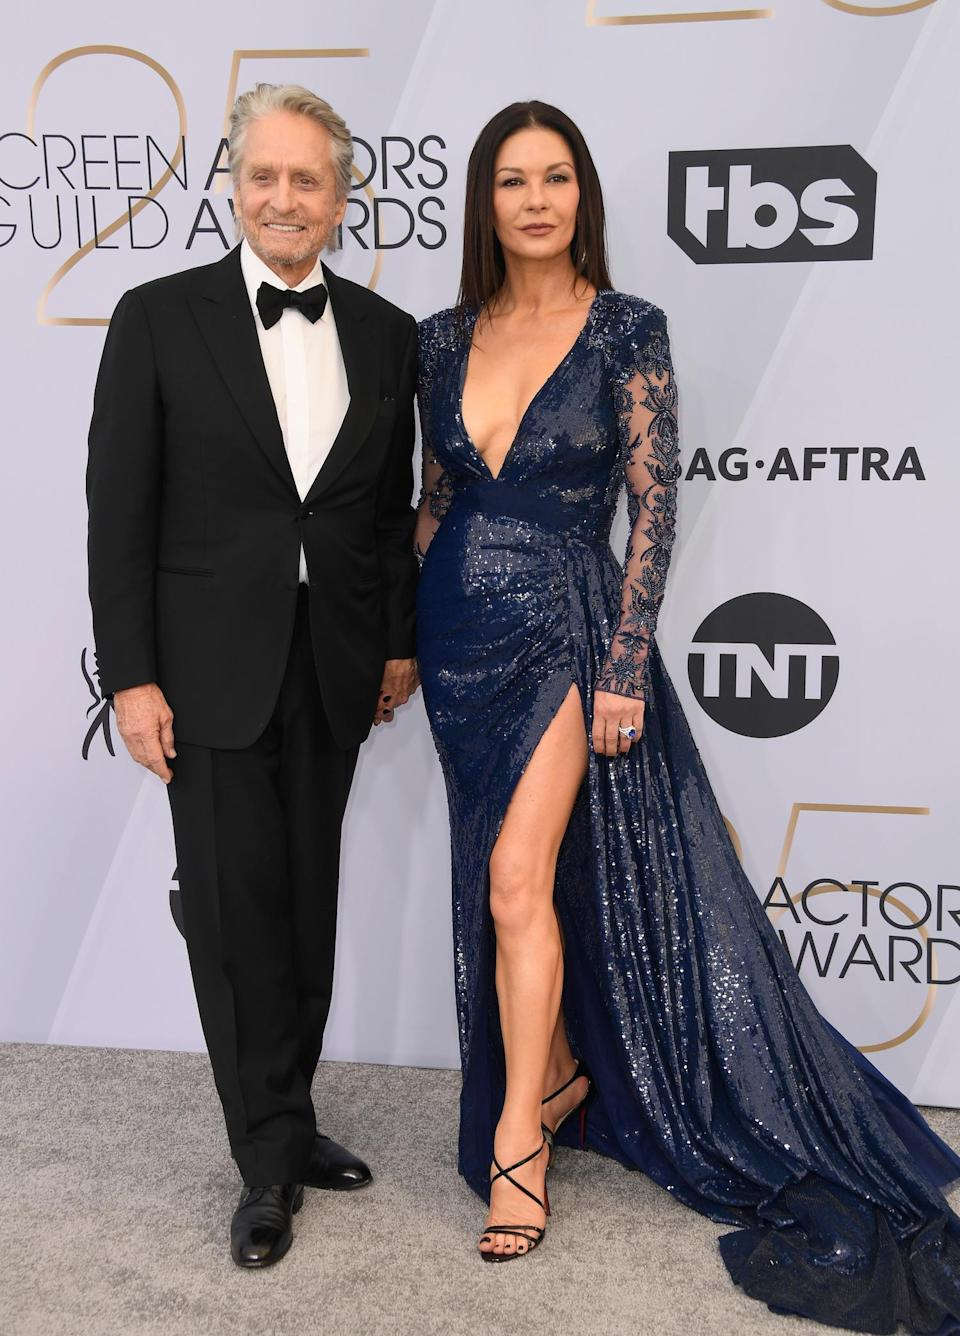 <p>Michael Douglas and Catherine Zeta Jones, in a Zuhair Murad gown, on the carpet at the 2019 Screen Actors Guild Awards together in Los Angeles. (Photo: Getty Images) </p>